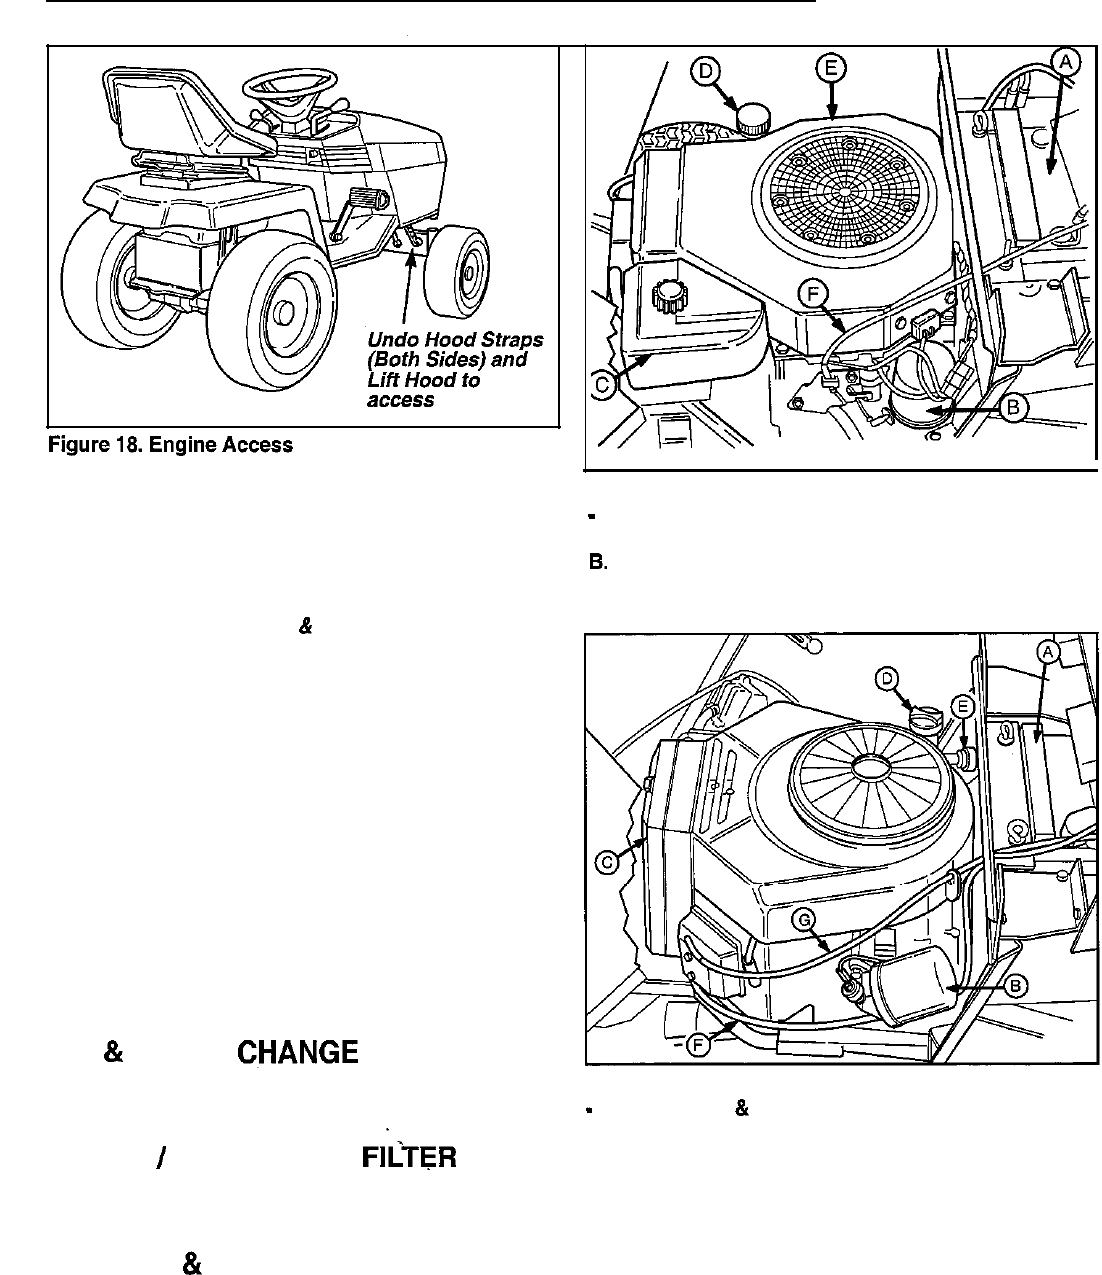 Page 23 of Simplicity Lawn Mower 16HP V-Twin User Guide